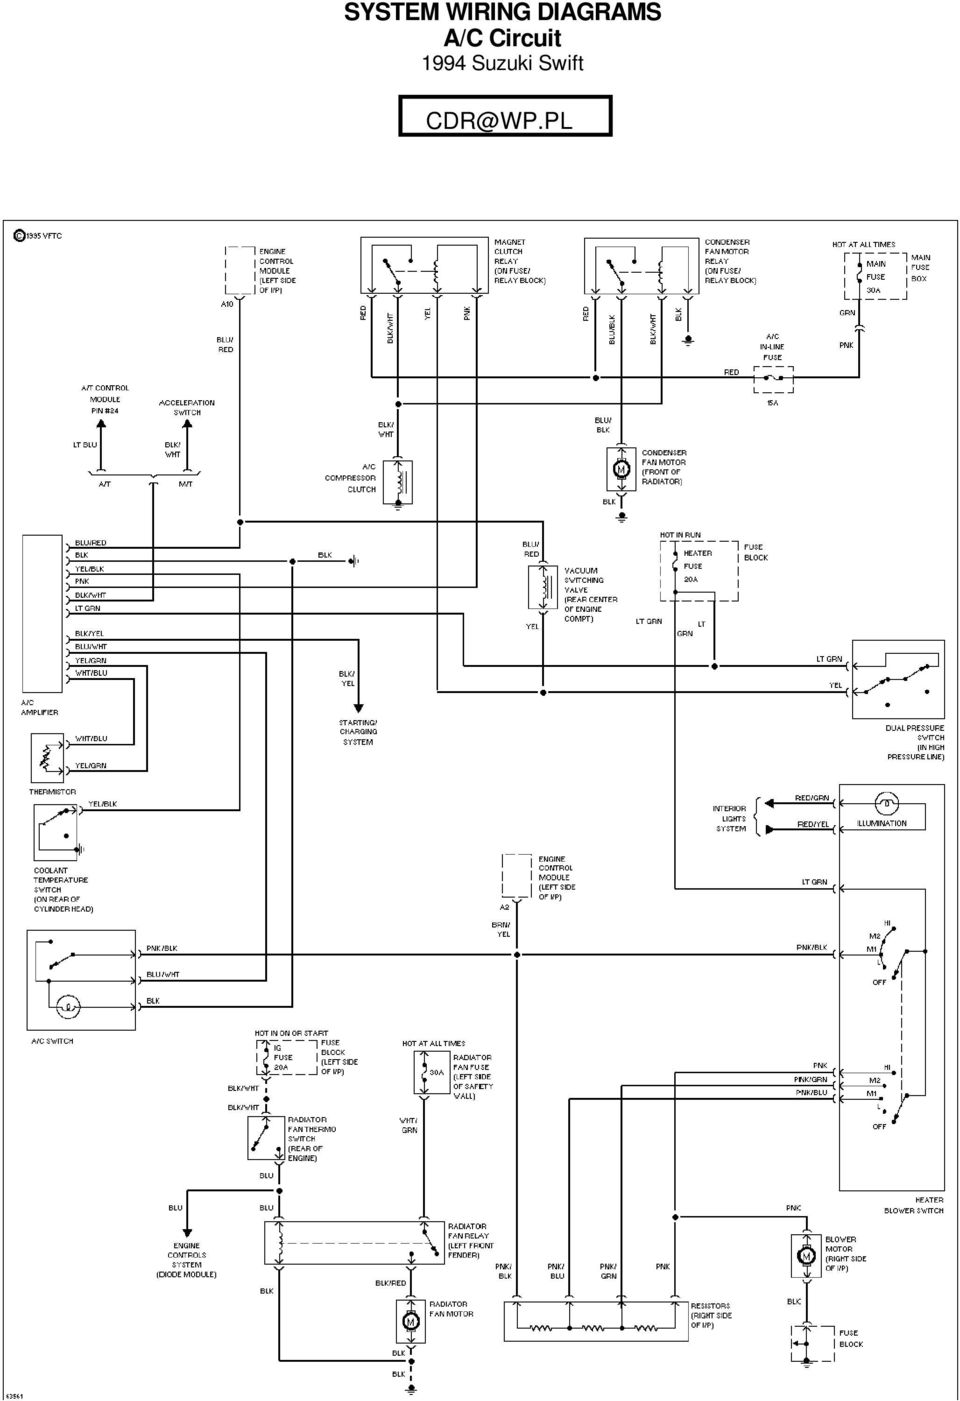 medium resolution of 1989 suzuki swift gti air conditioner wiring diagram and wiring rh 4 skriptoase de